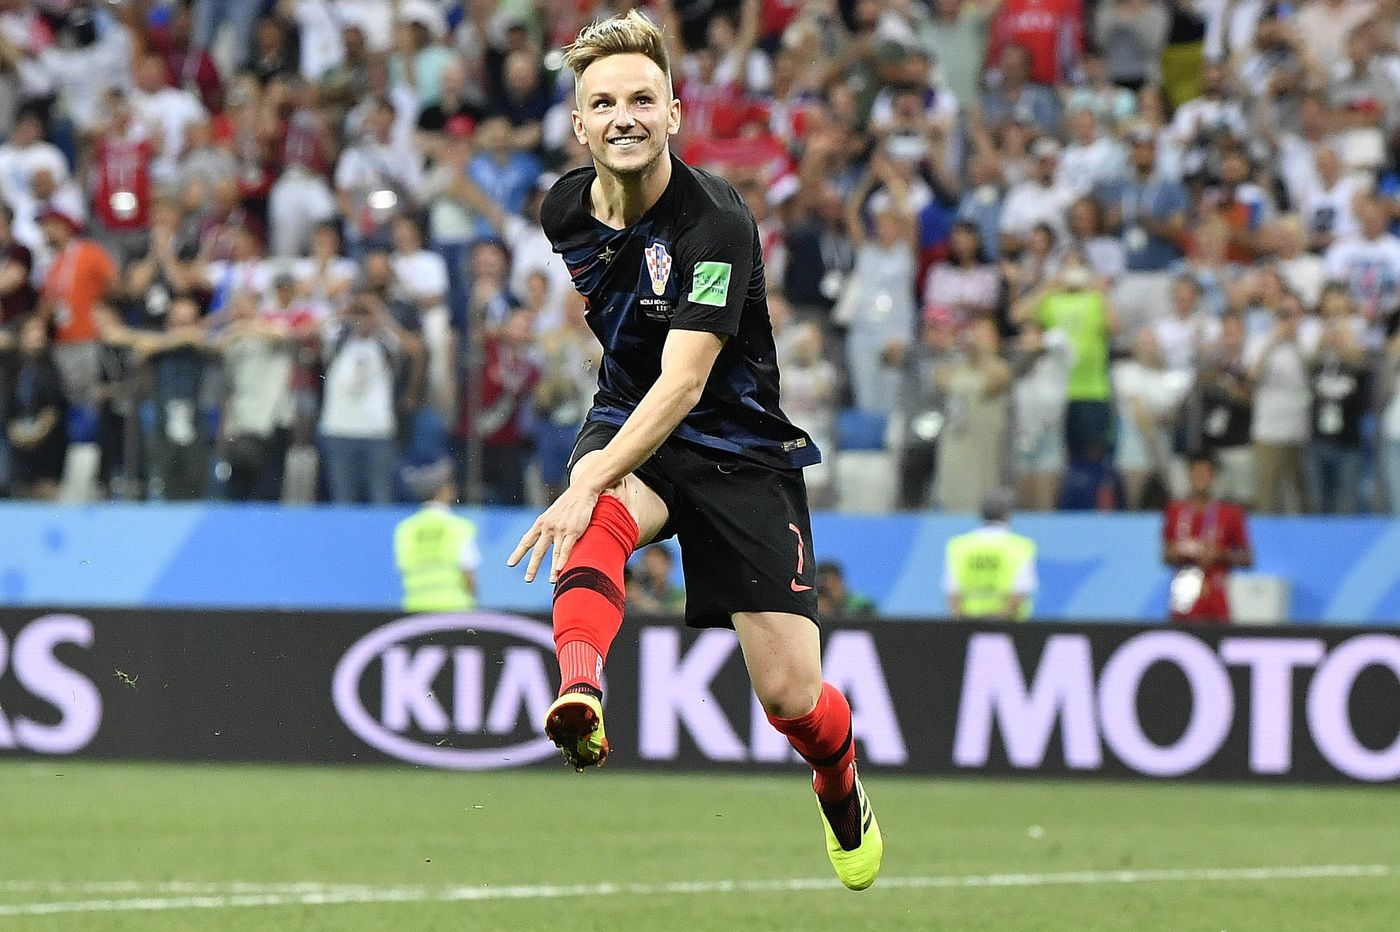 World Cup schedule, TV and streaming info: England vs. Croatia